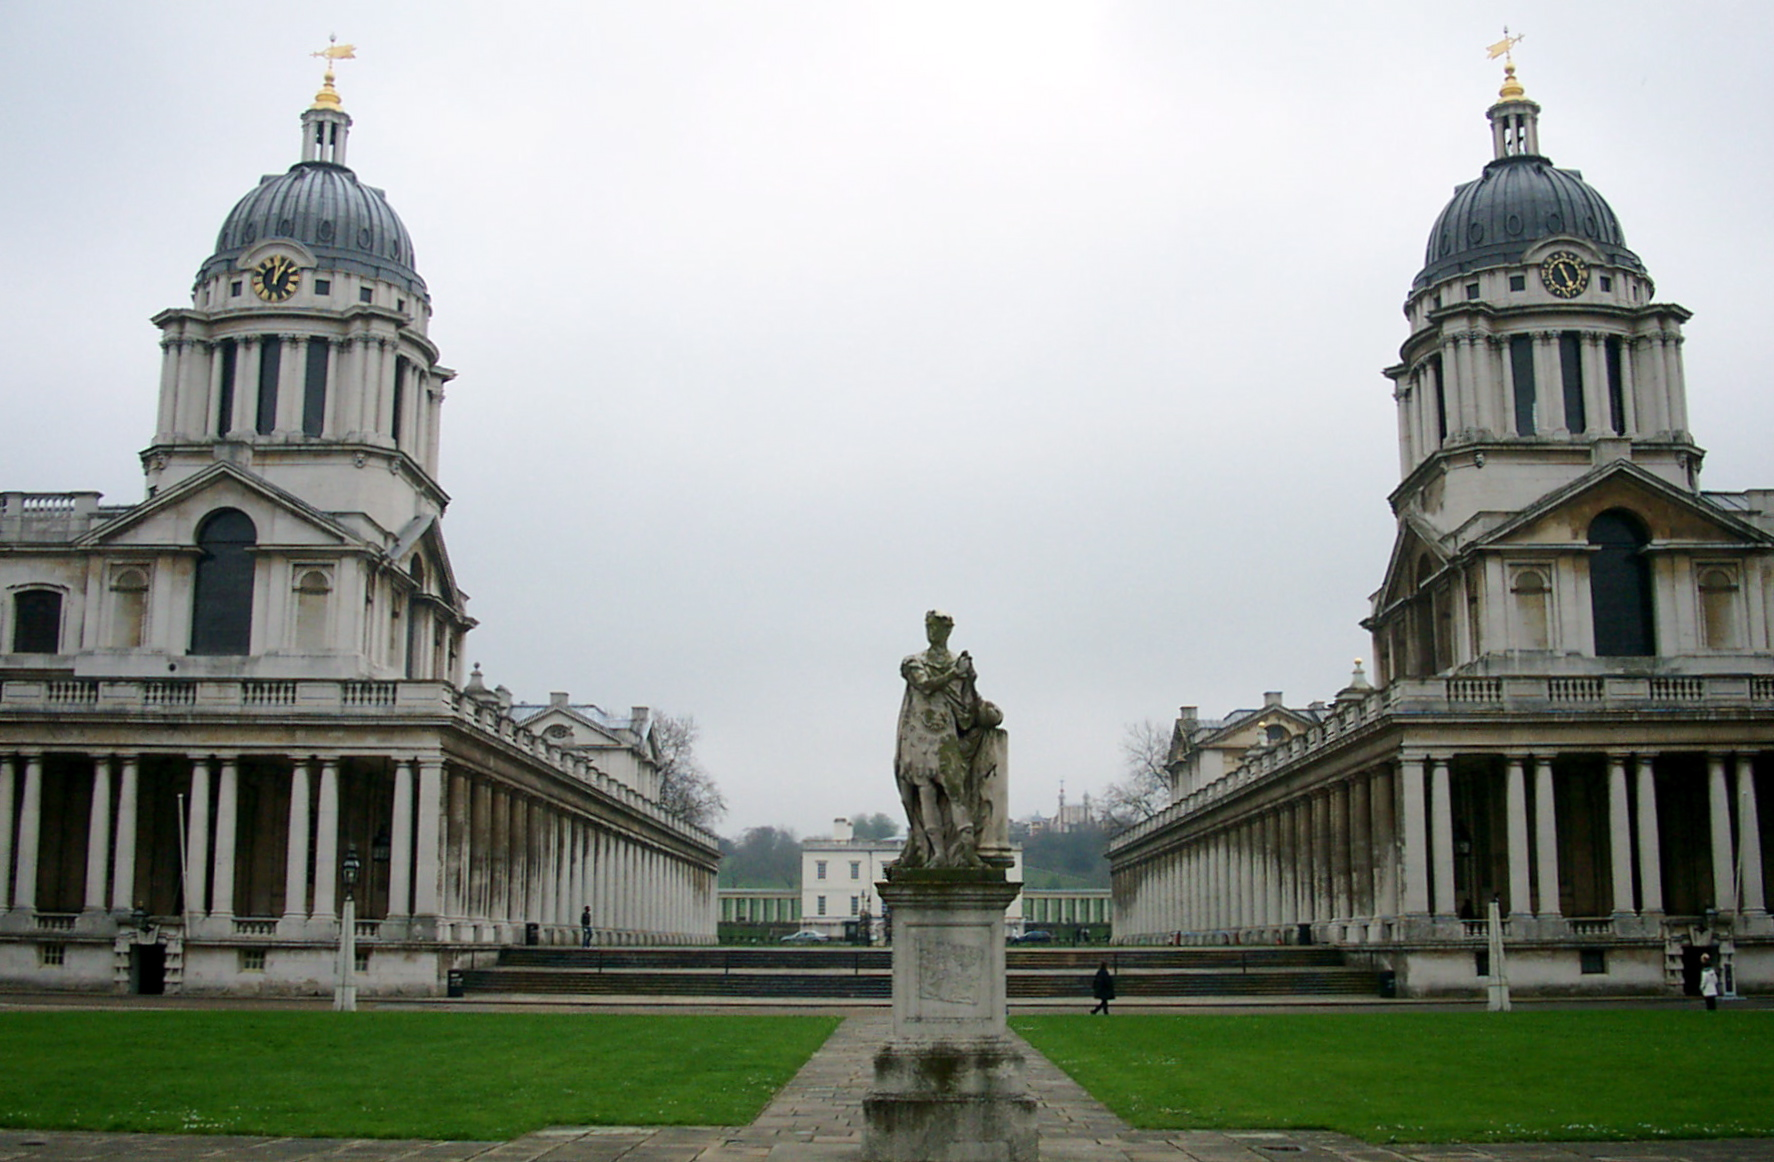 Old royal naval college, greenwich, connecticut